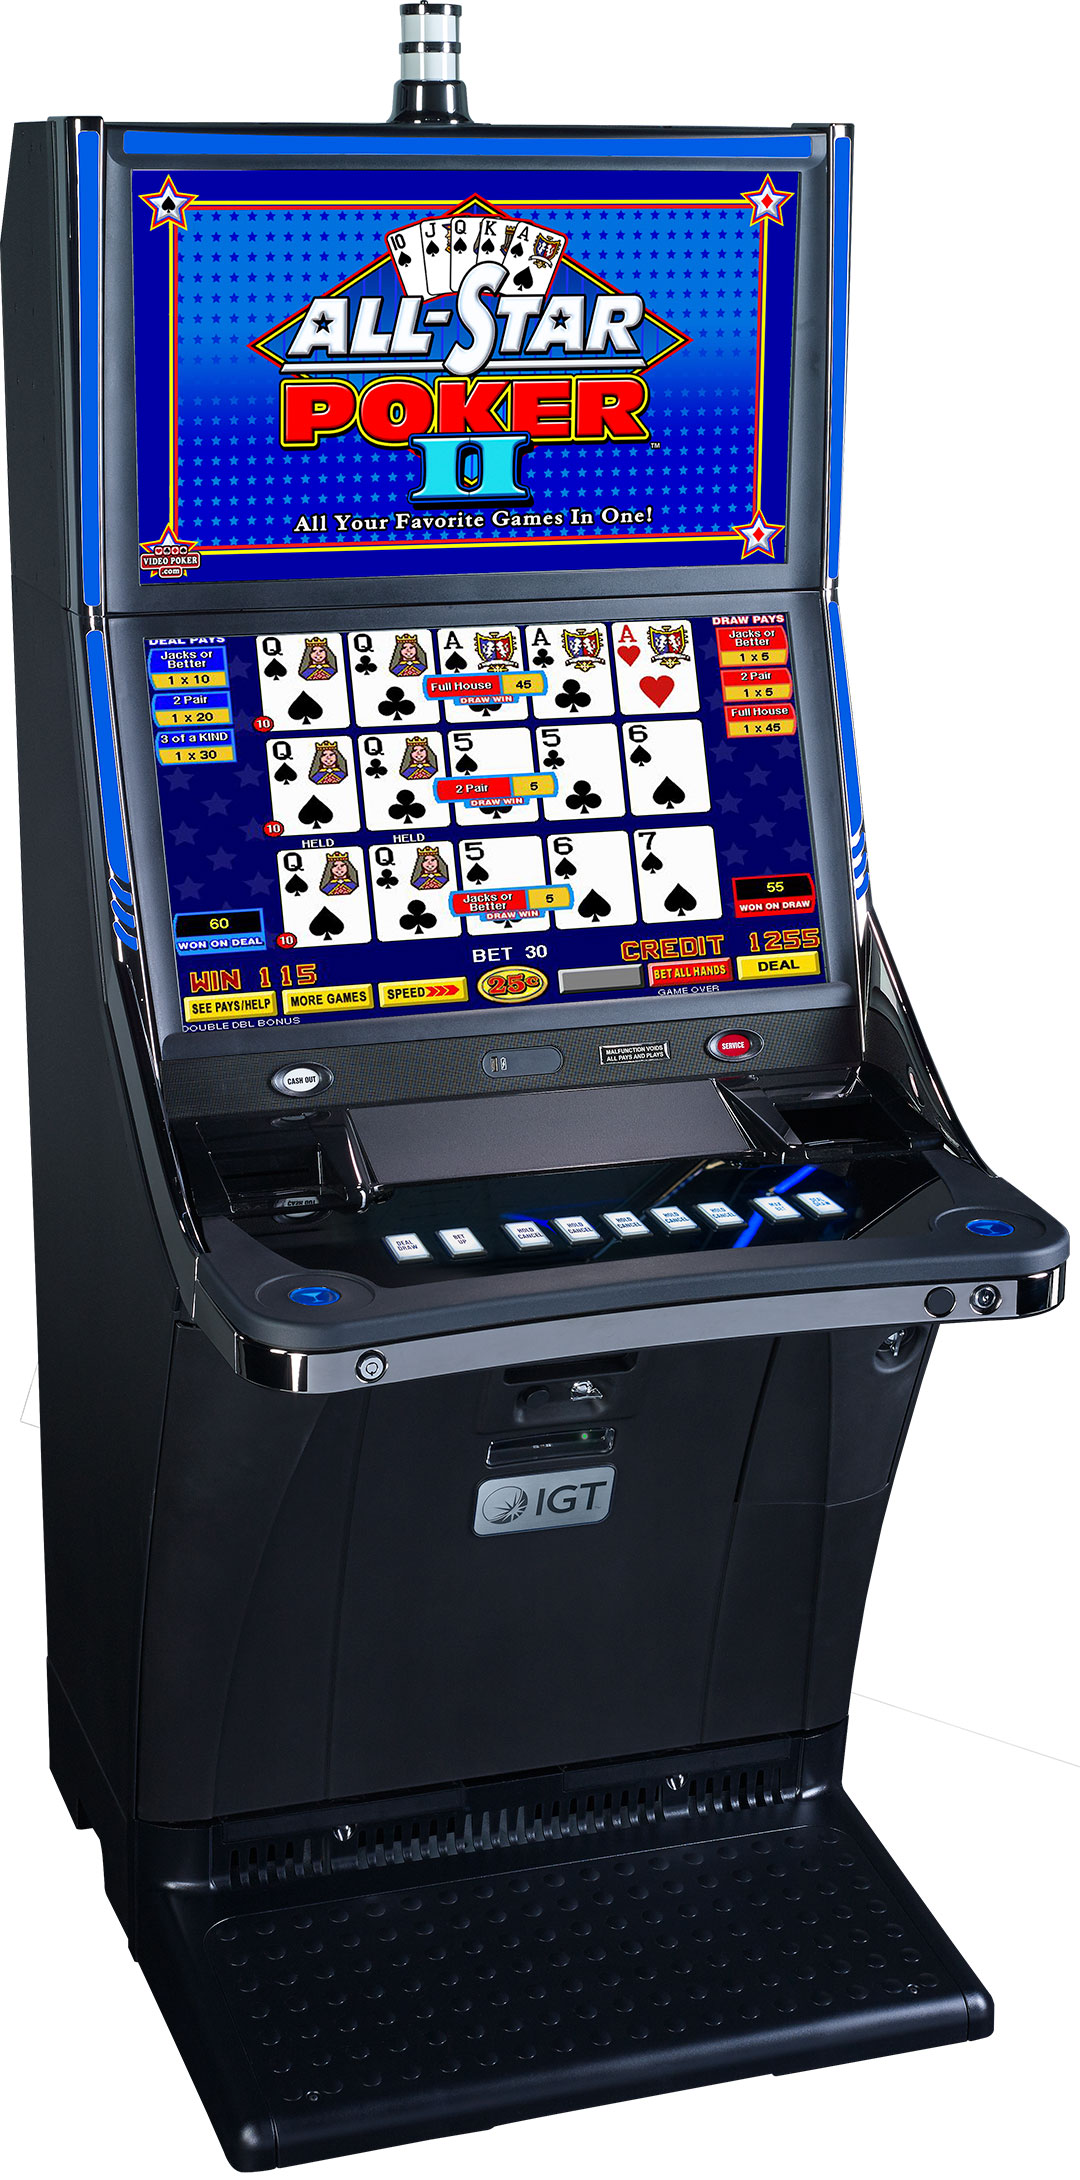 All Star Poker Crystal Slant Cabinet